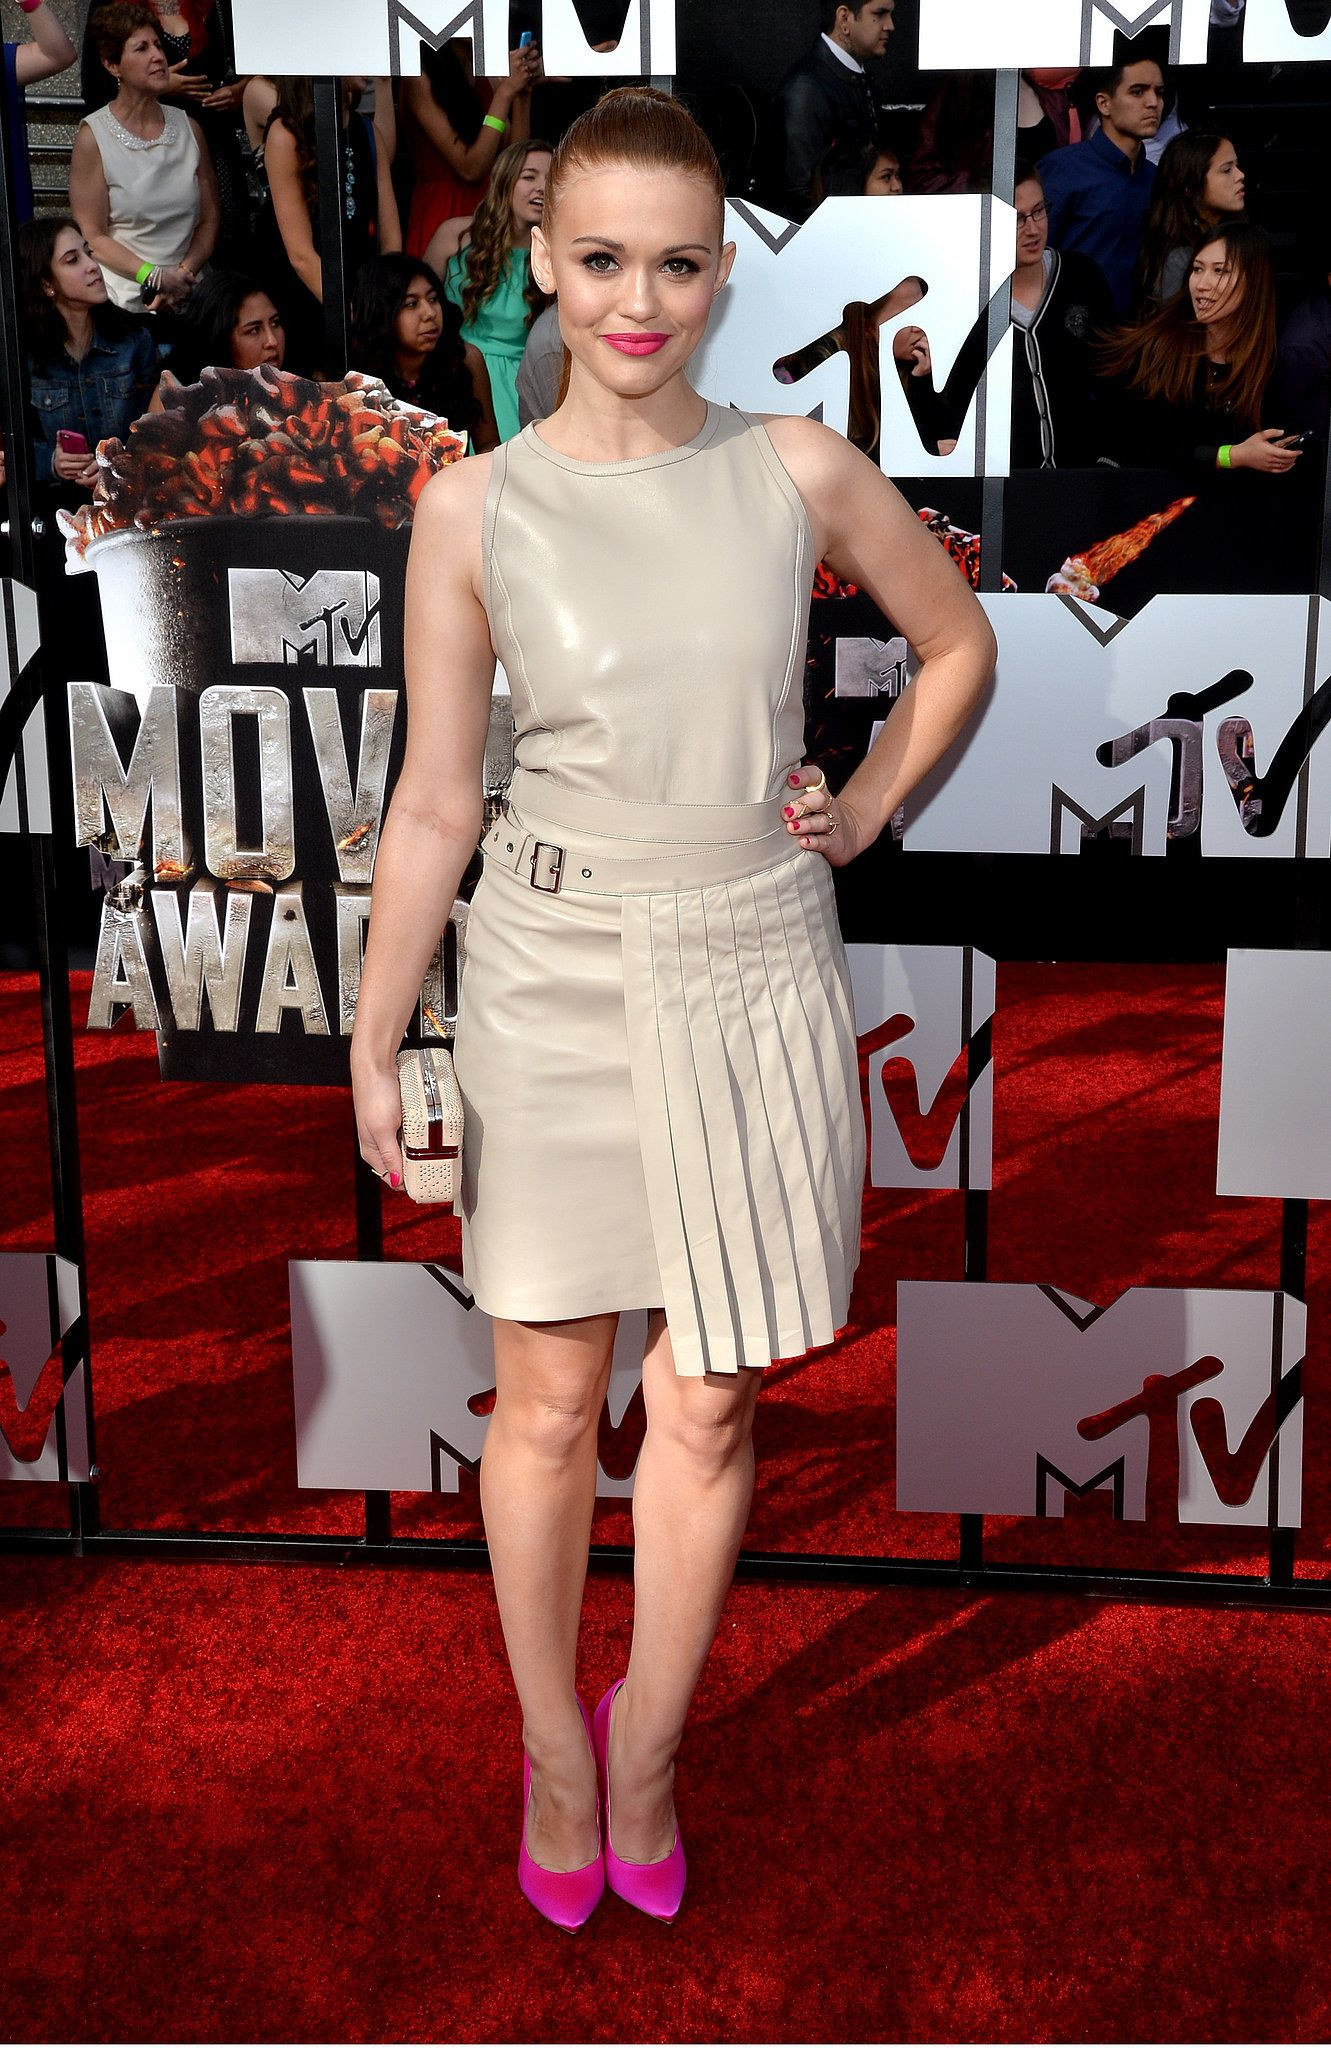 Holland Roden At The 2014 Mtv Movie Awards  Red Carpet -1216